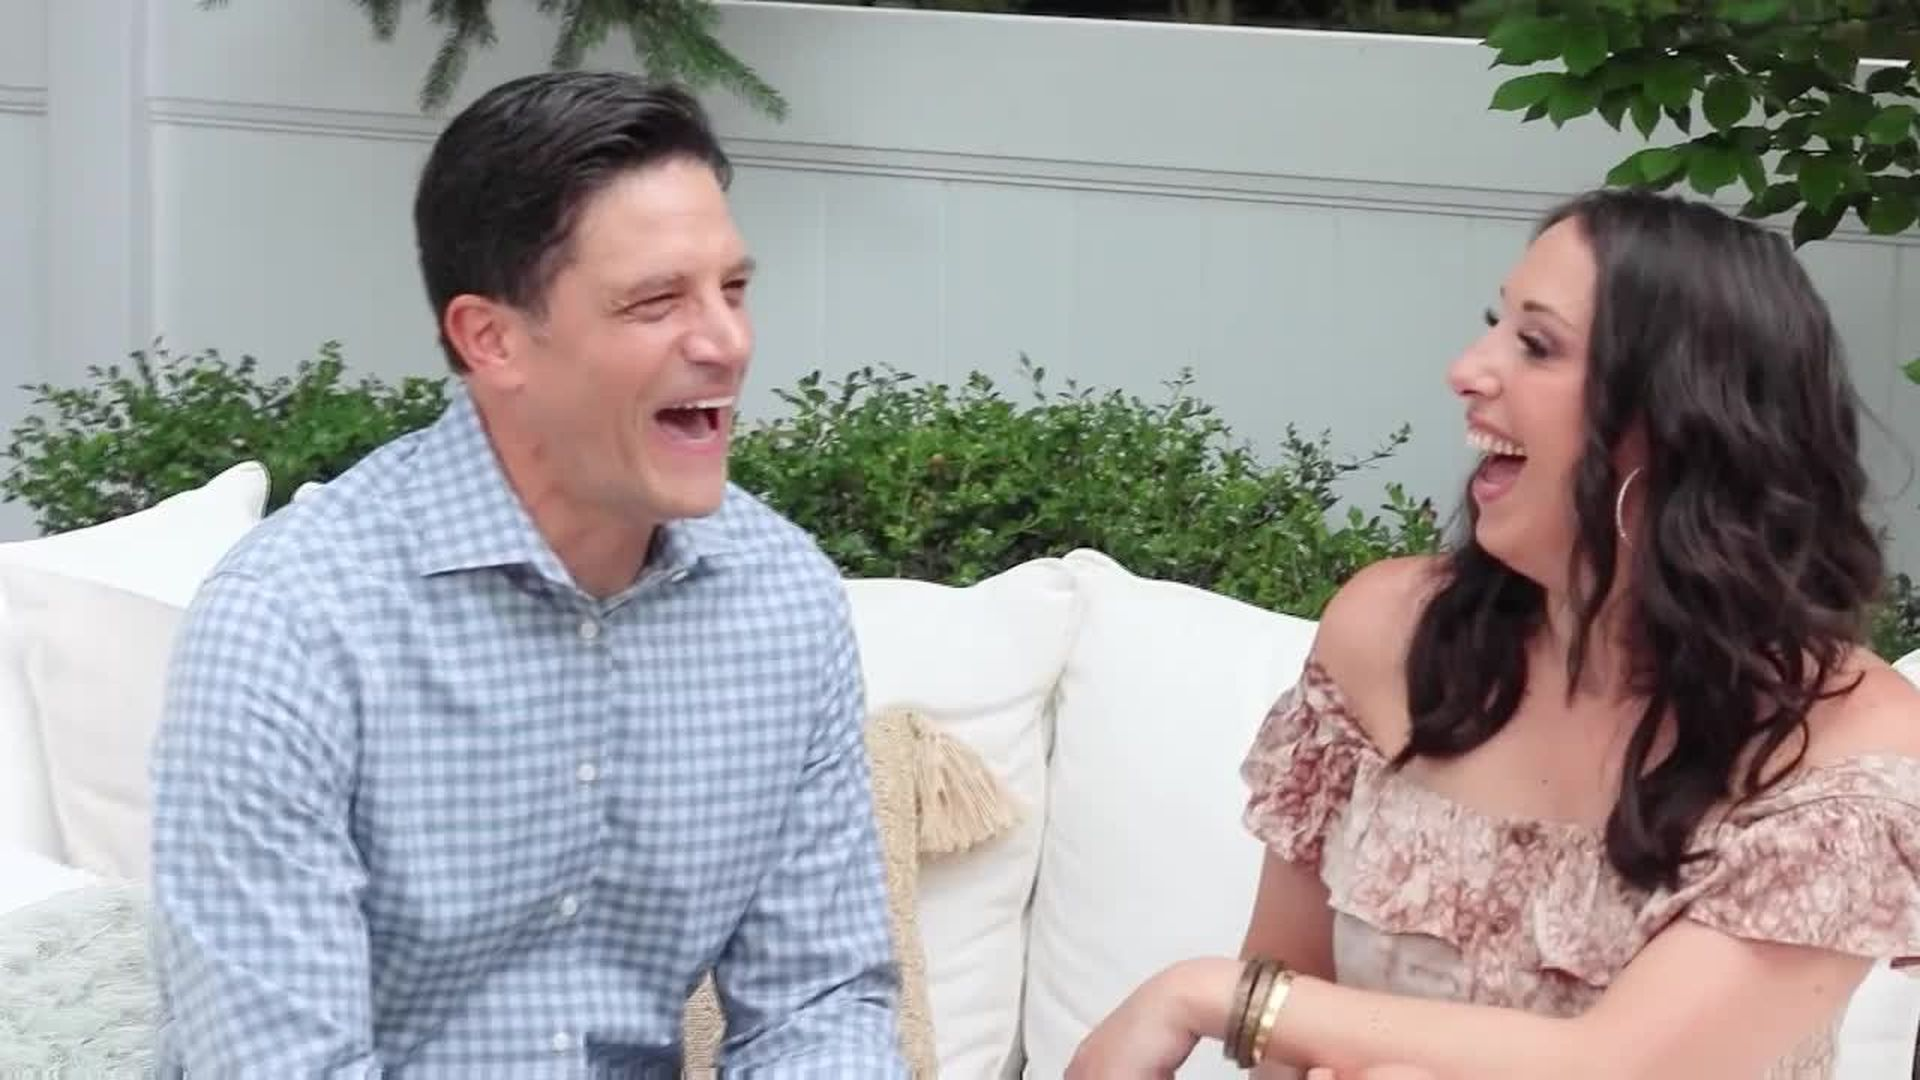 Lifestyle Today with Justine and Eraldo Episode Six